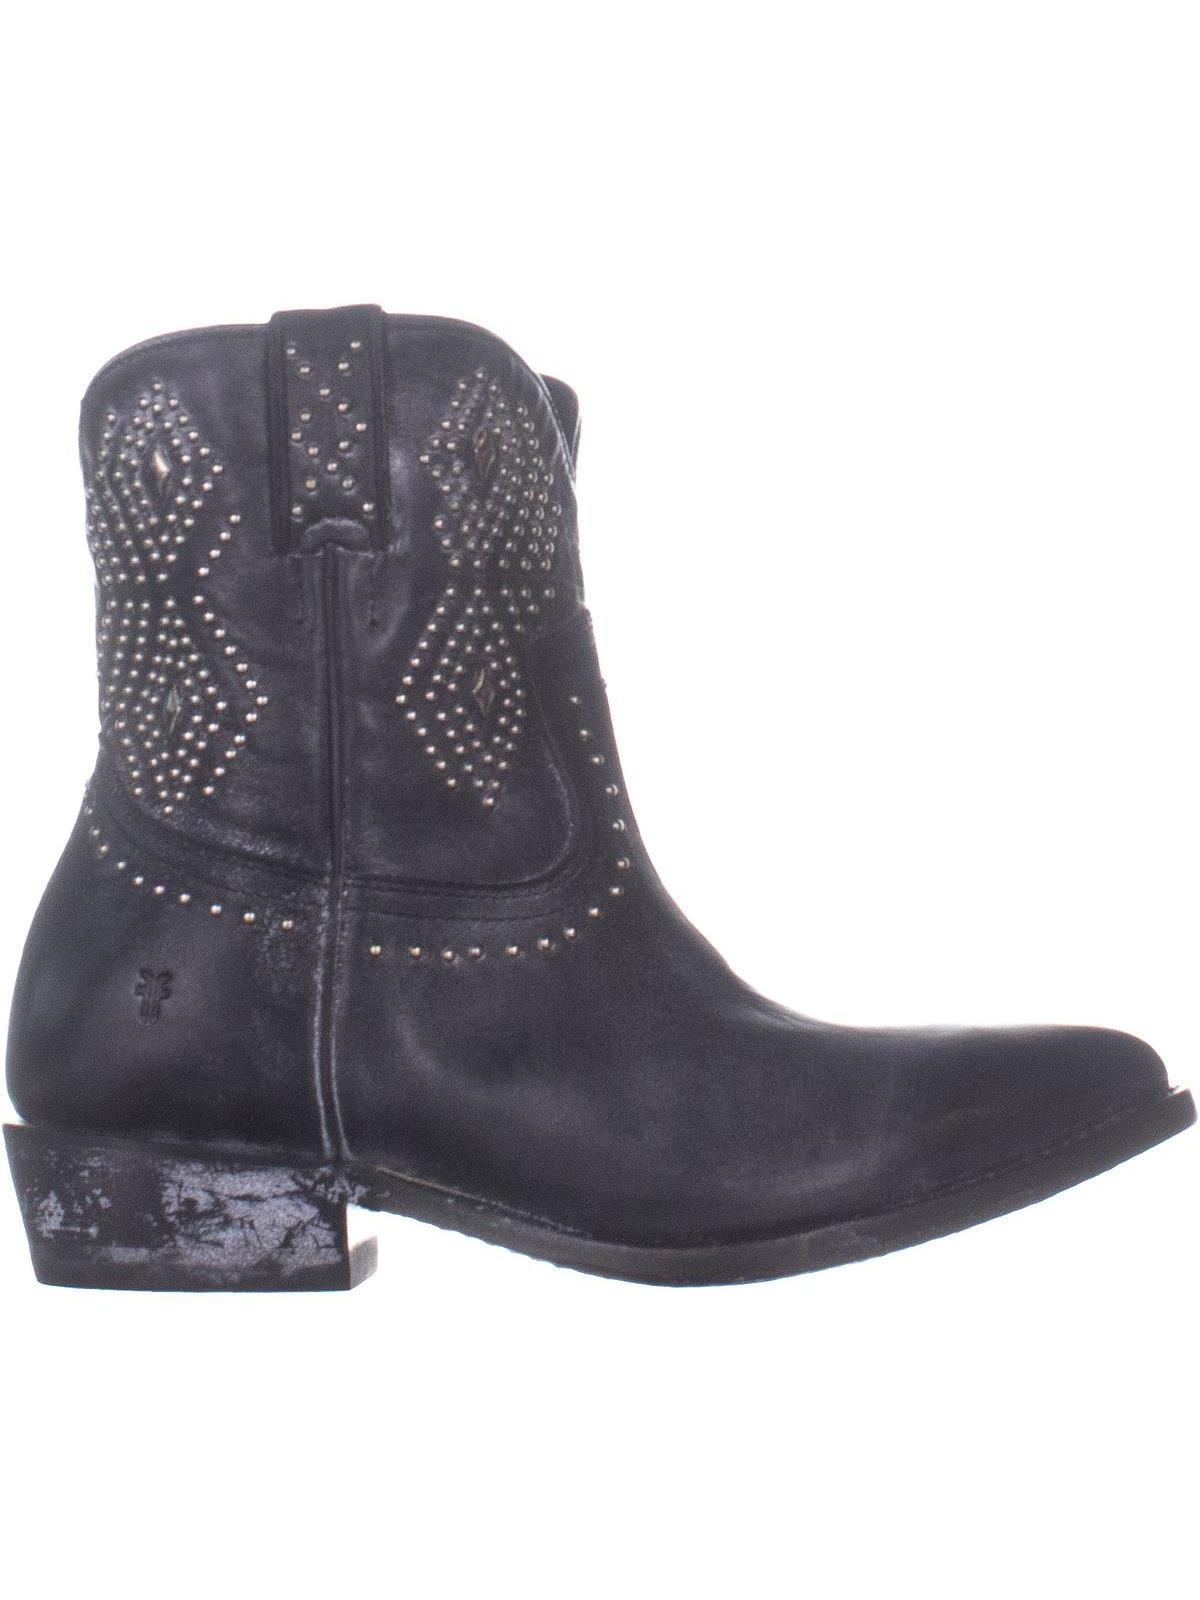 87b07e82f9a FRYE Billy Stud Short Distressed Western Boots